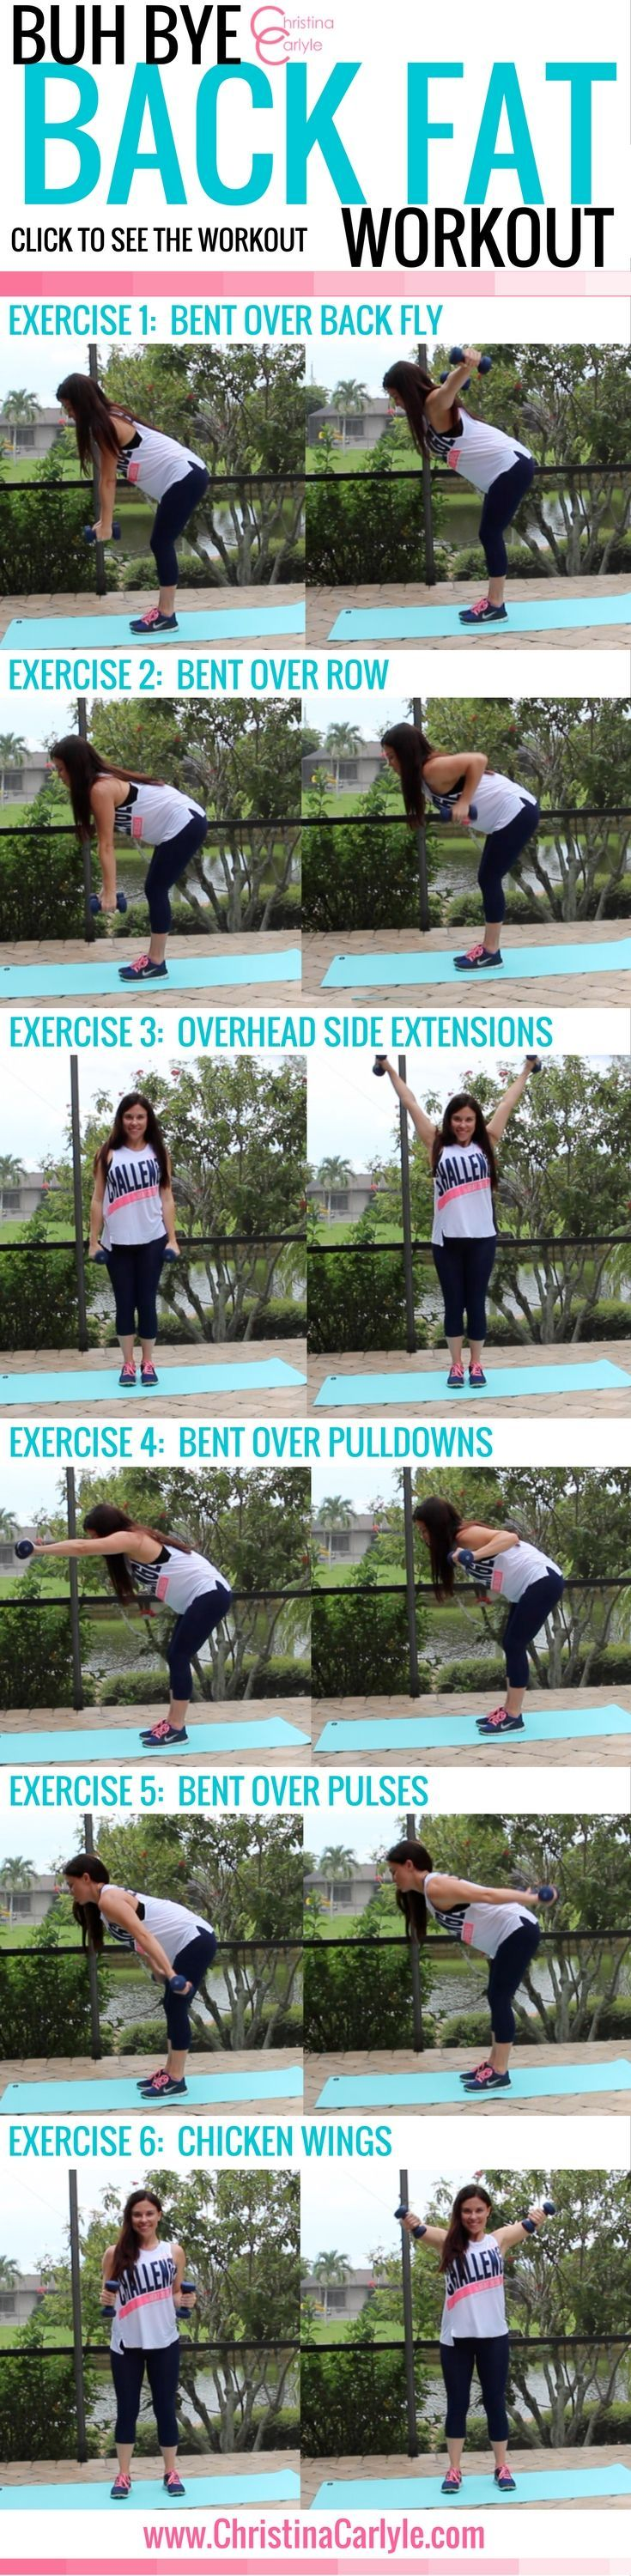 Workouts for women - Exercises for Back Fat https://www.musclesaurus.com/flat-stomach-exercises/